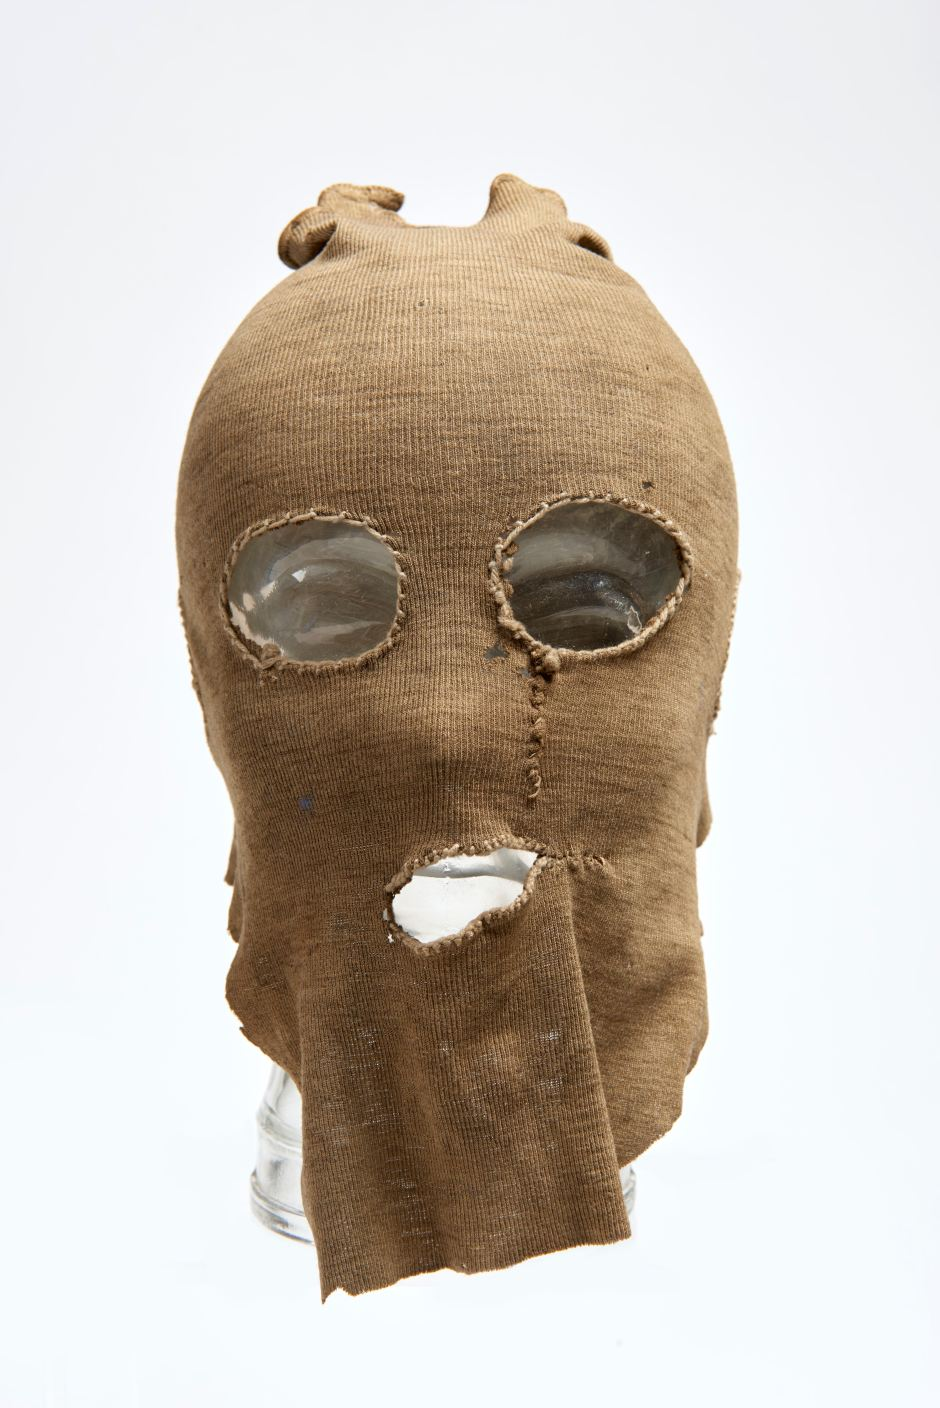 12. Mask from the murder case of PC George Gutteridge by Frederick Browne & William Kennedy, 1927 ∏ Museum of London